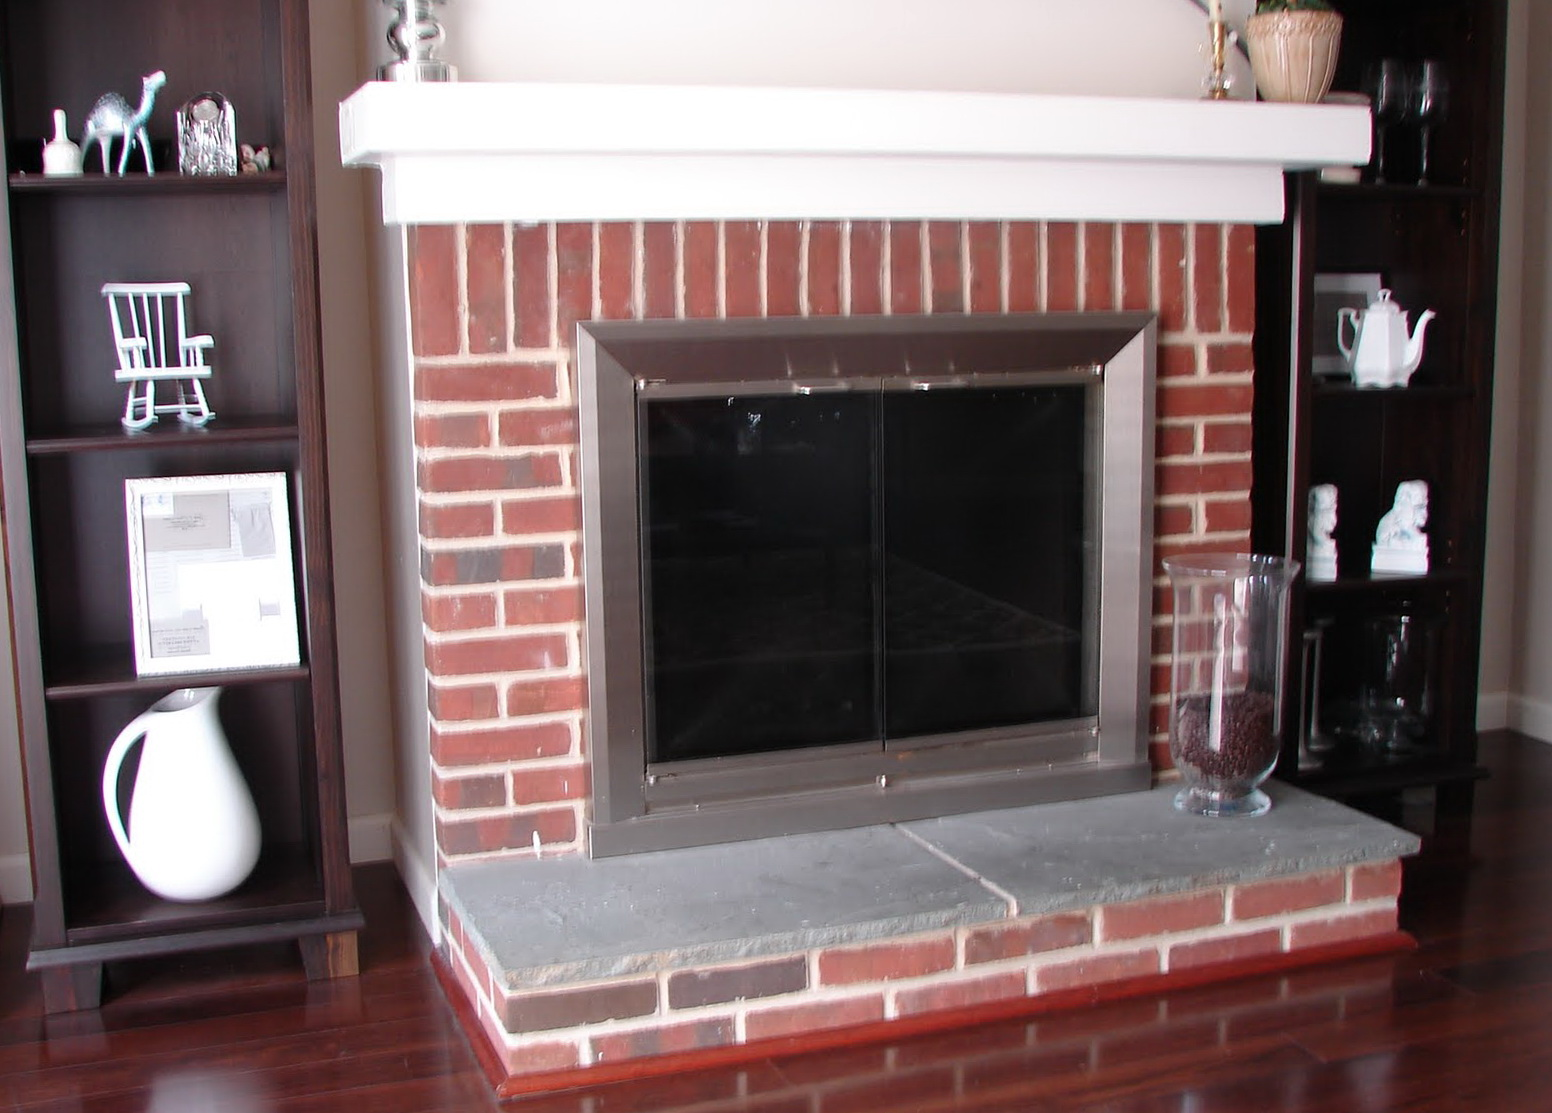 traditional styling in this living room includes red brick